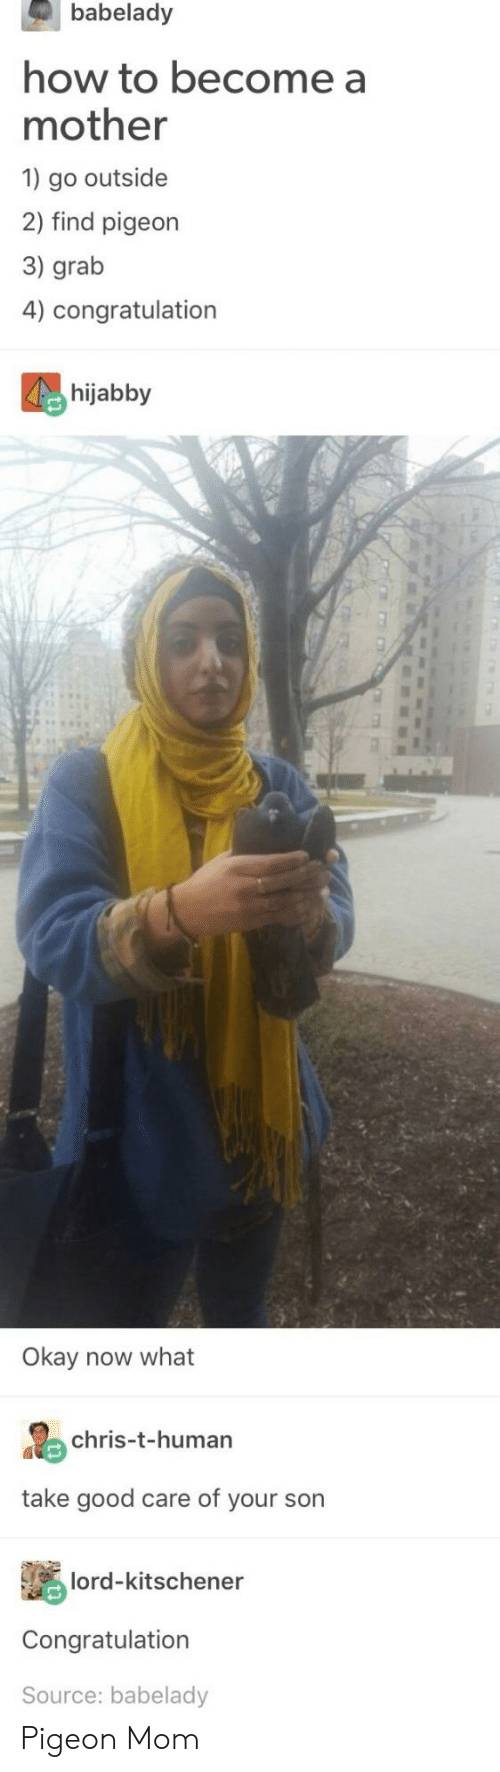 congratulation: babelady  how to become a  mother  1 go outside  2) find pigeon  3) grab  4) congratulation  hijabby  Okay now what  chris-t-human  take good care of your son  lord-kitschener  Congratulation  Source: babelady Pigeon Mom